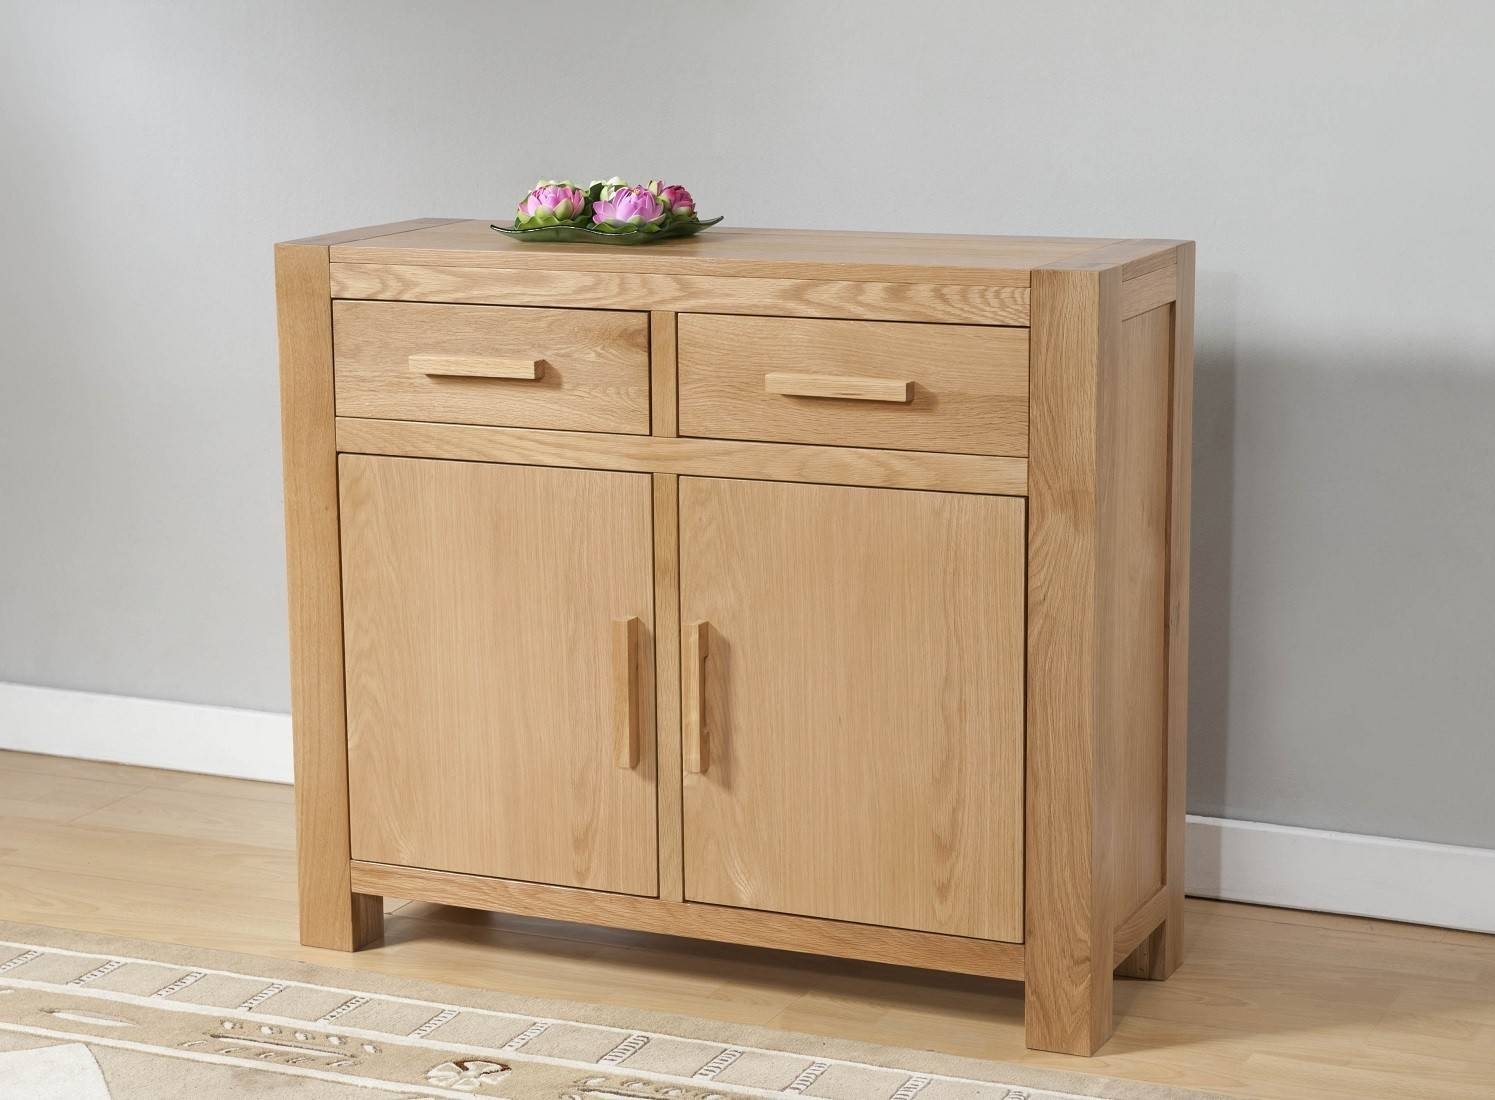 Oak Sideboards | Oak Furniture Uk Within Small Sideboards (#9 of 20)